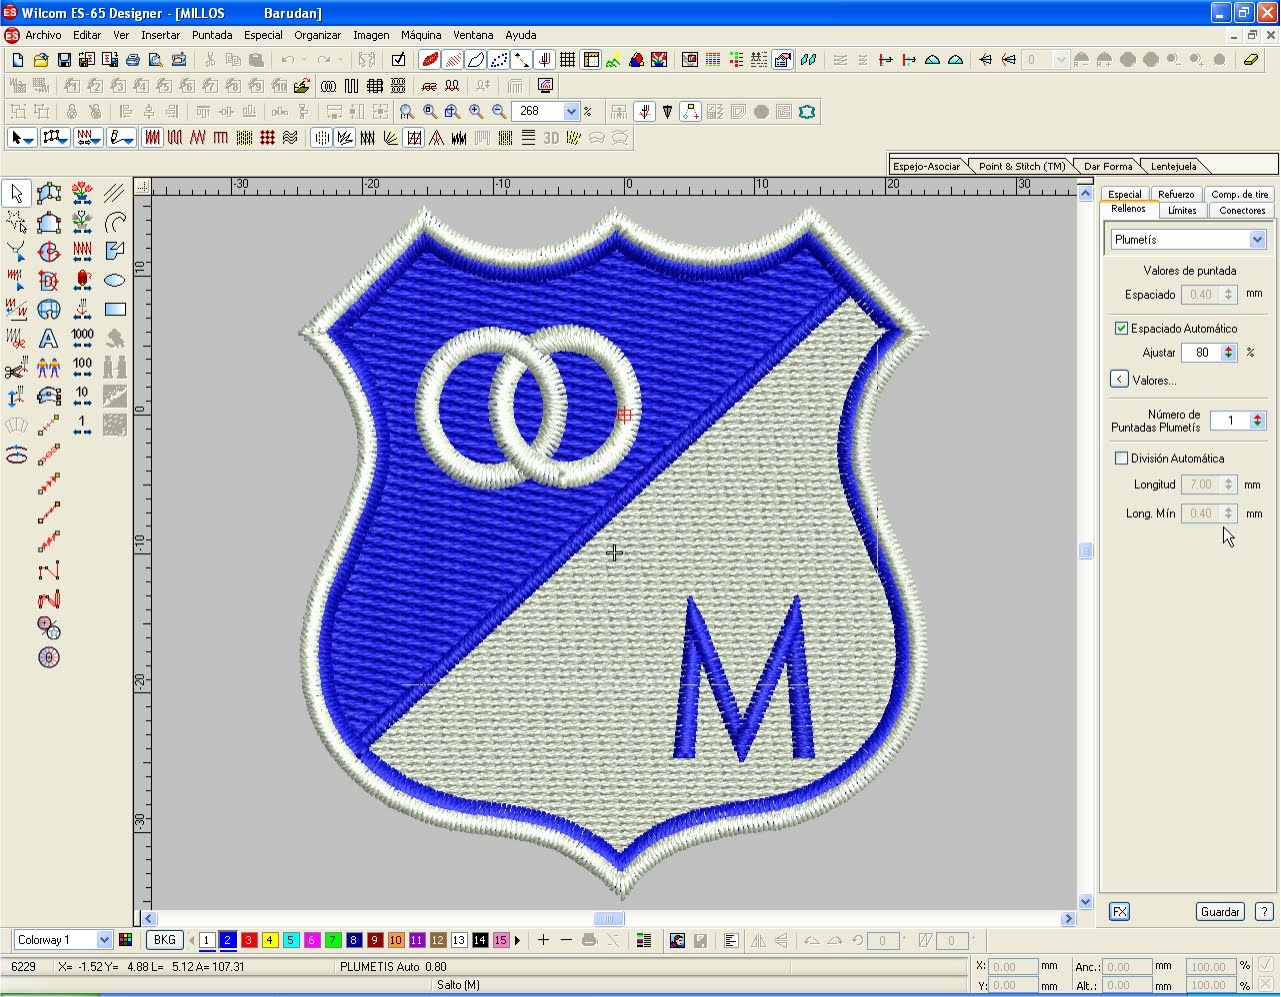 Escudos Millos Wallpapers | Real Madrid Wallpapers